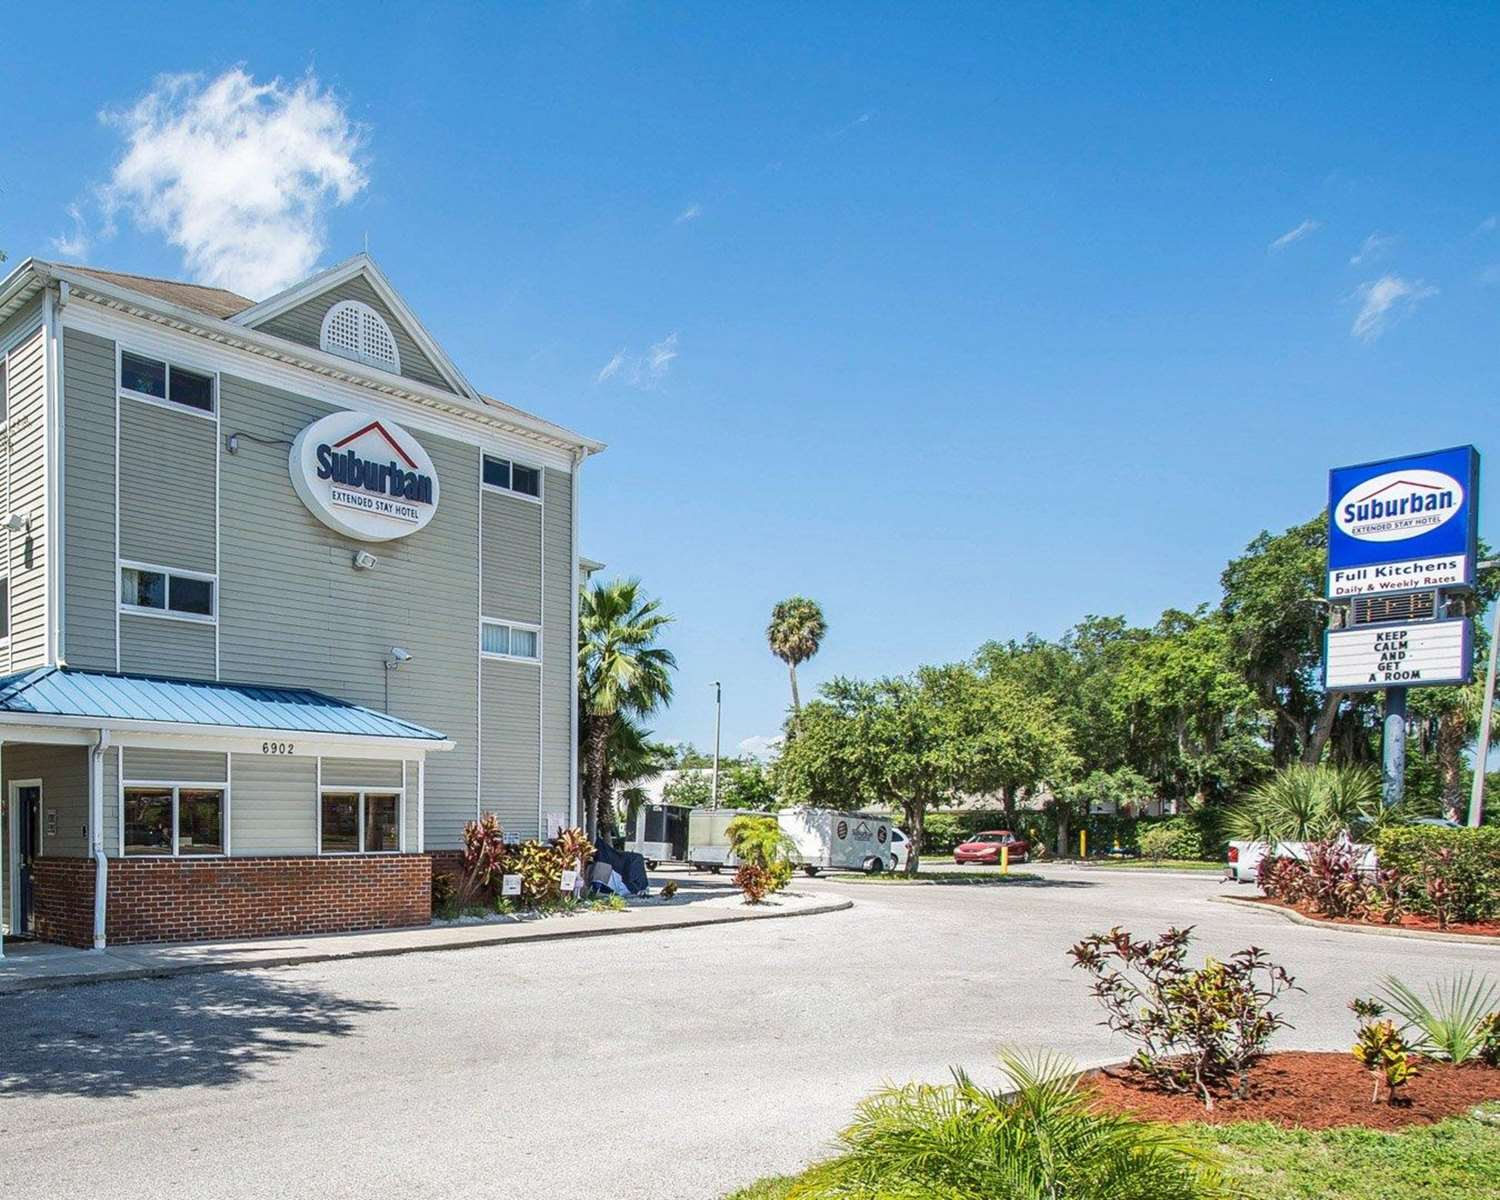 suburban extended stay hotel tampa airport fl see discounts. Black Bedroom Furniture Sets. Home Design Ideas